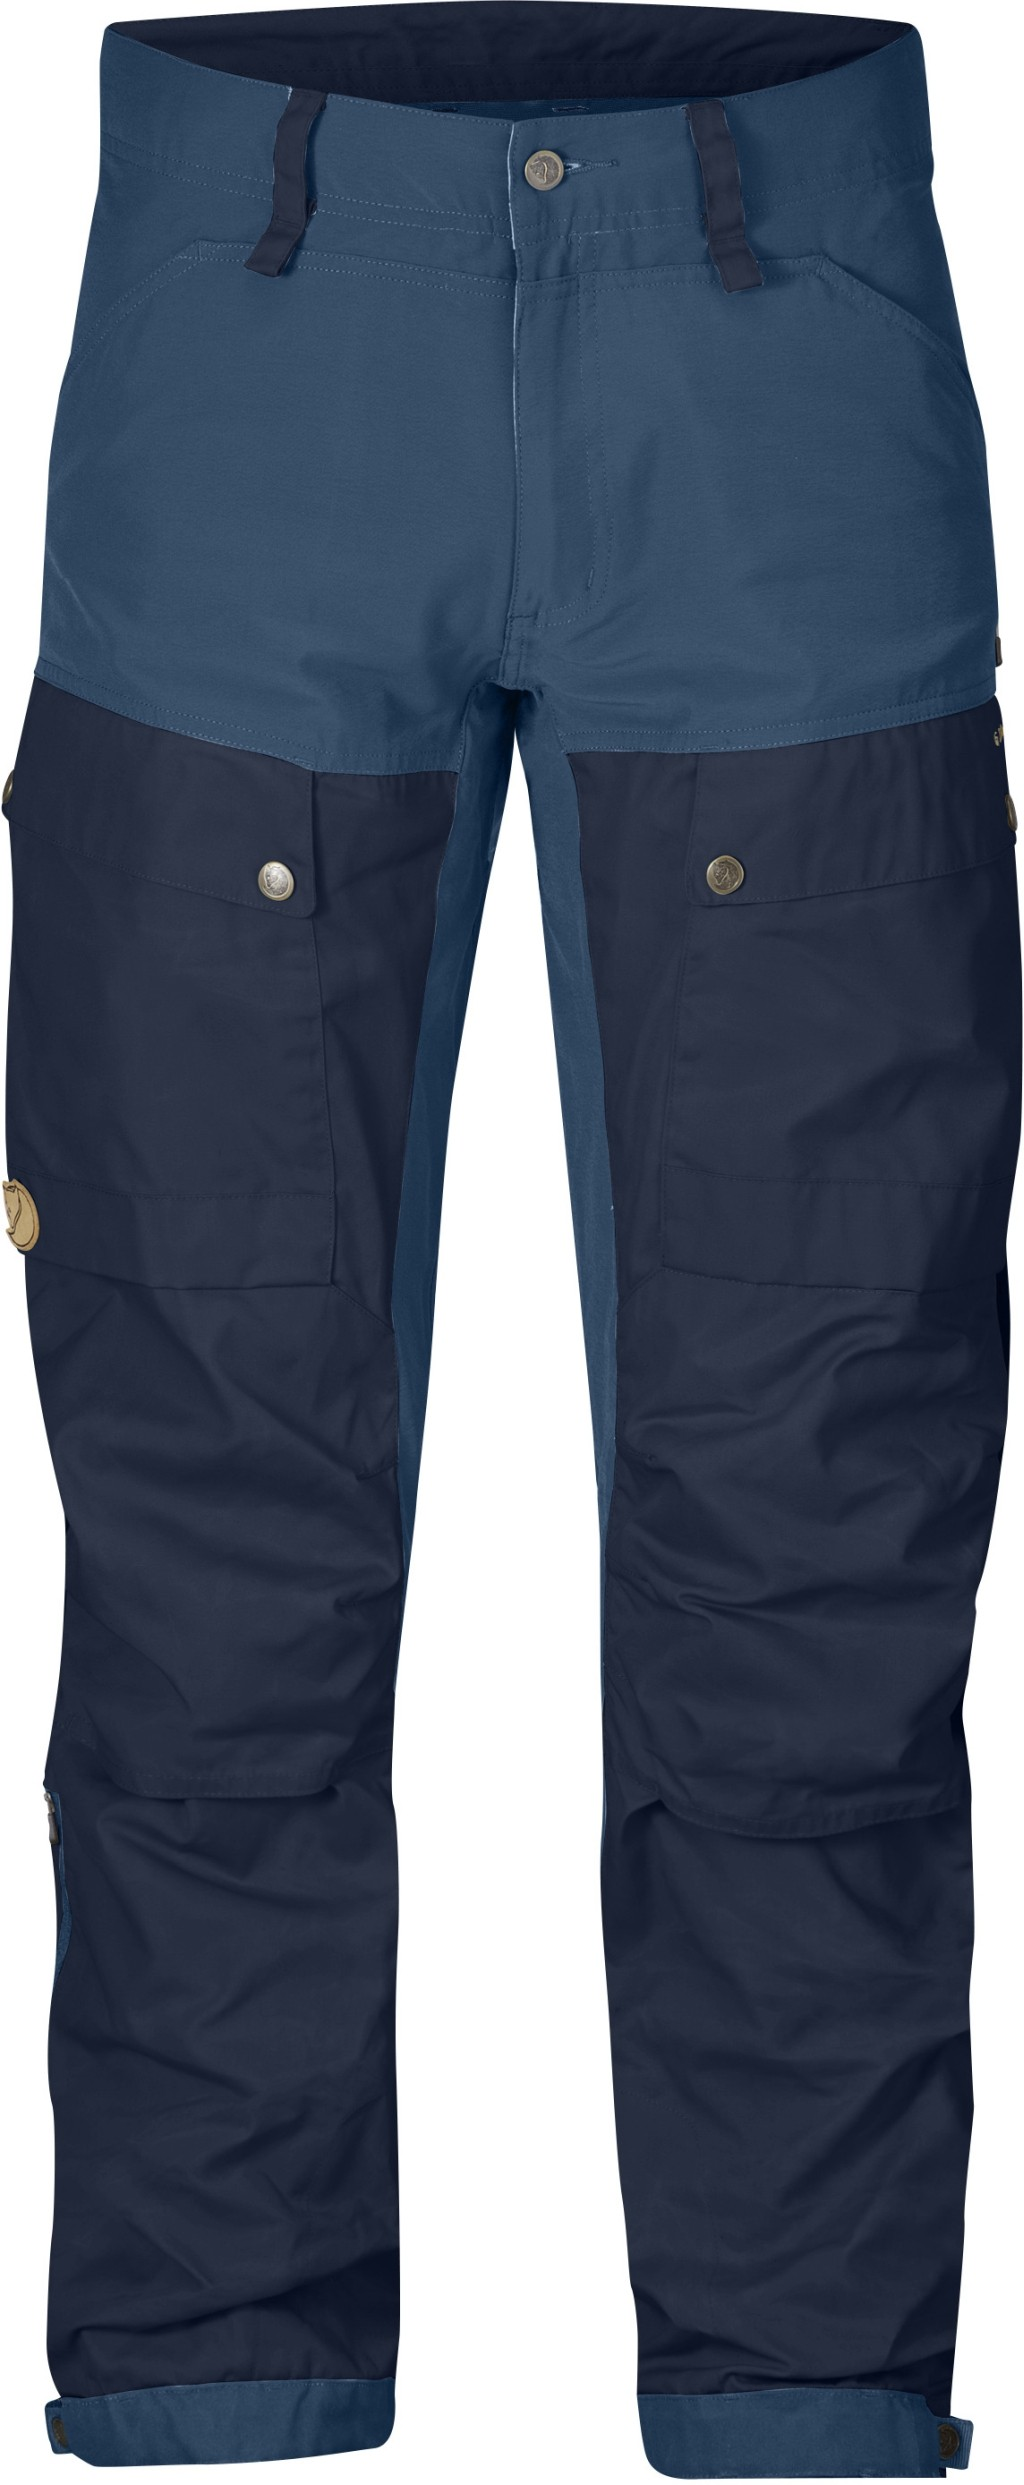 FjallRaven Keb Trousers Regular